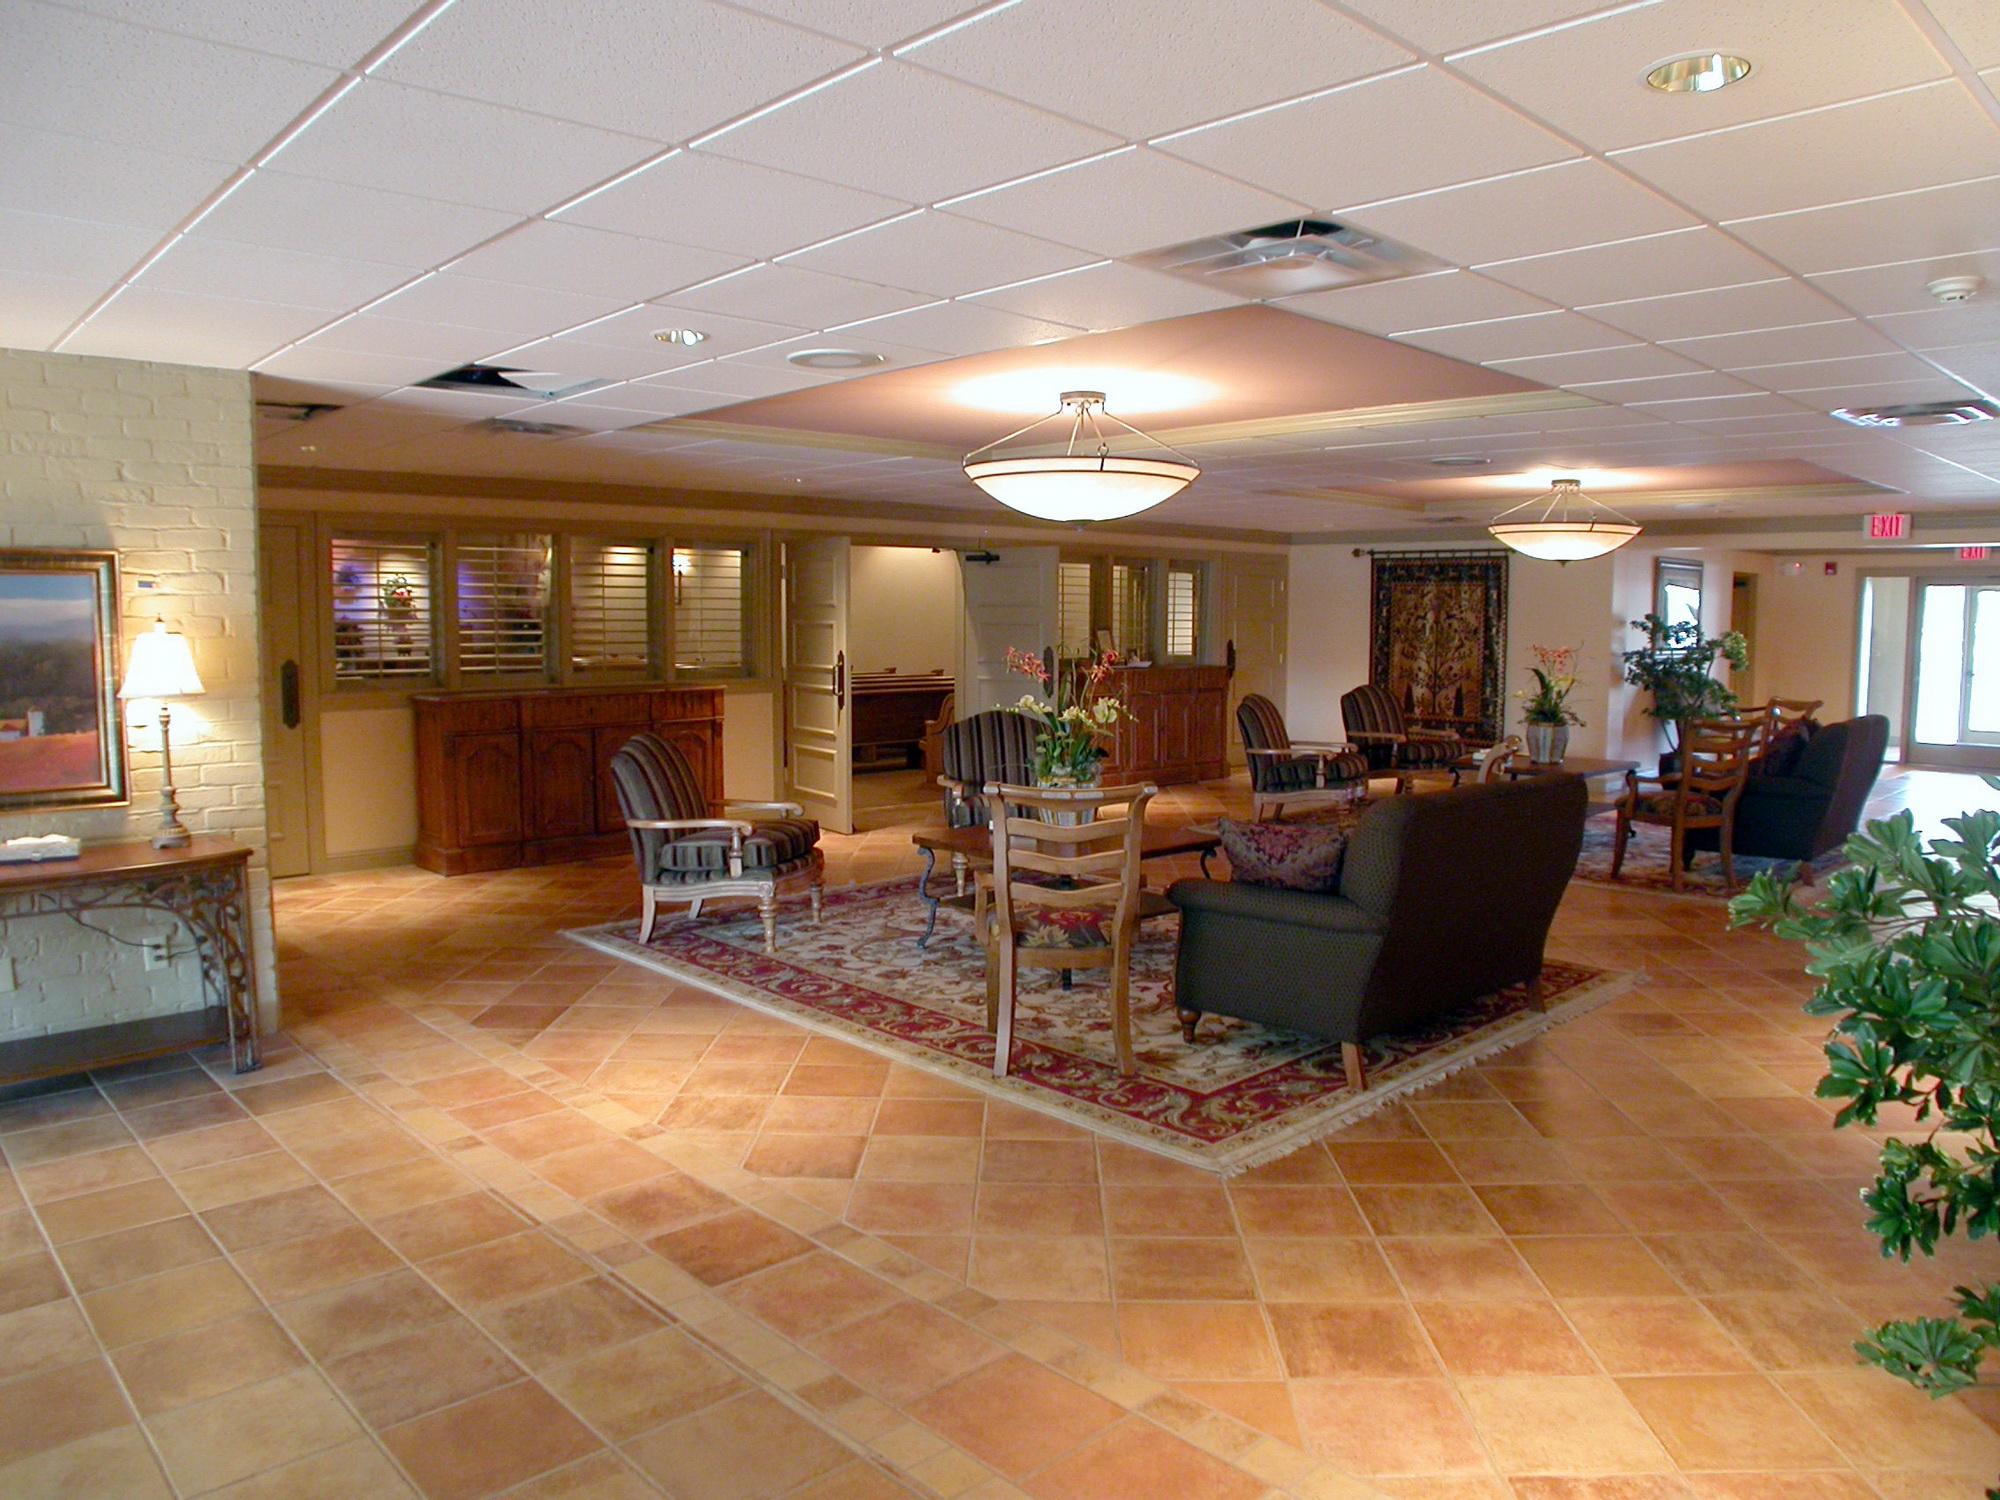 Eubank Funeral Home Jst Architects Funeral Home Interior Design